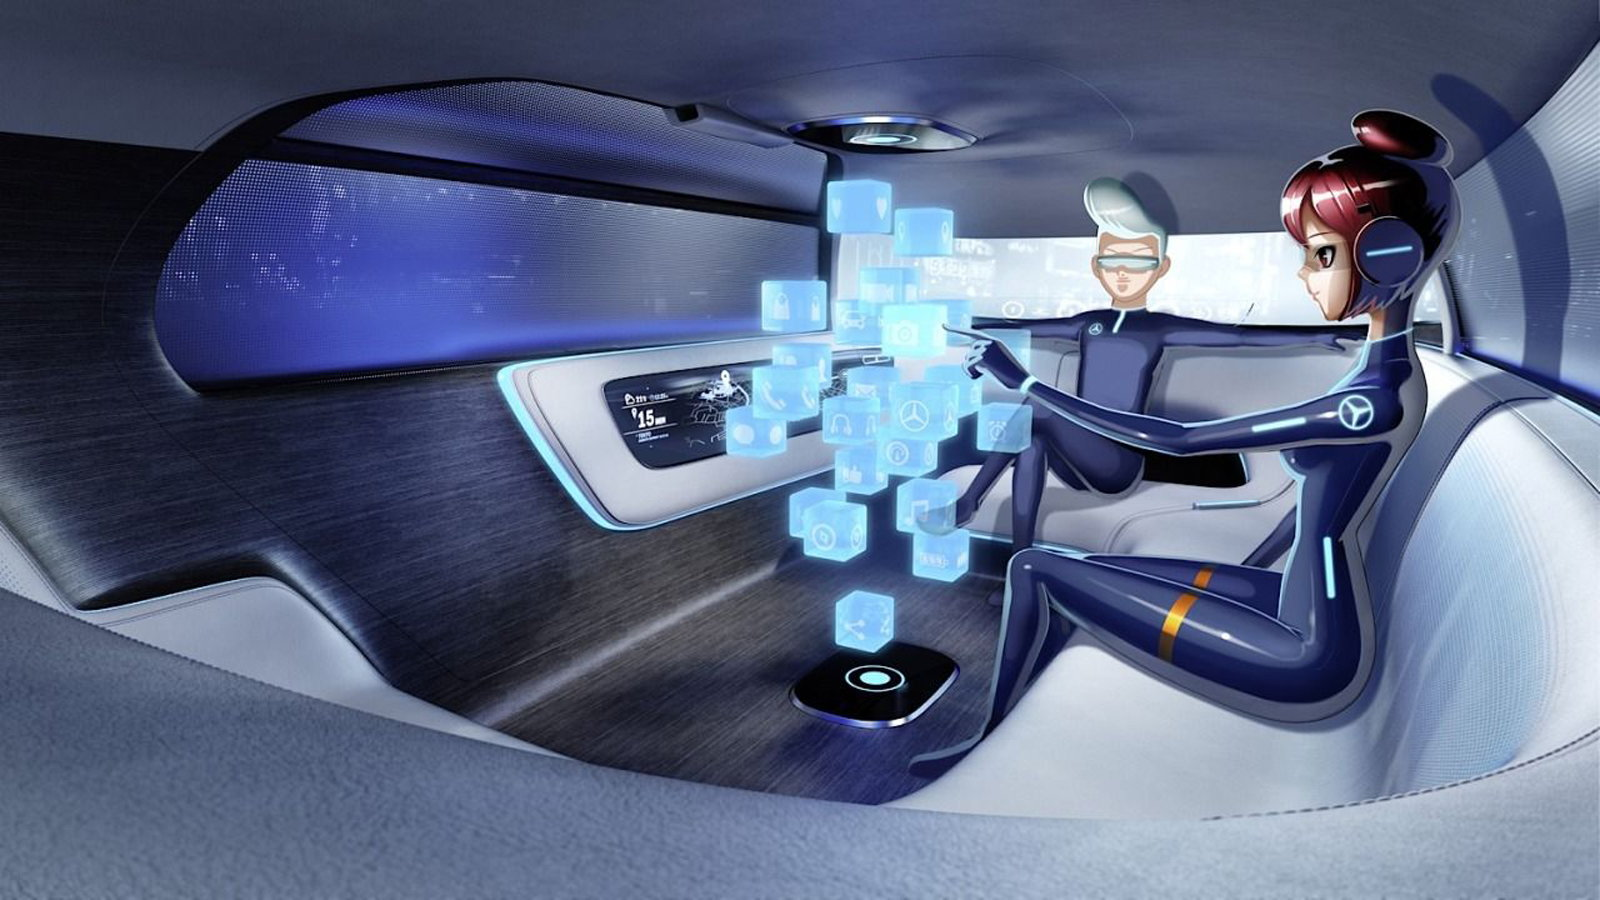 Robot Cars Provide a Posh Future for MB